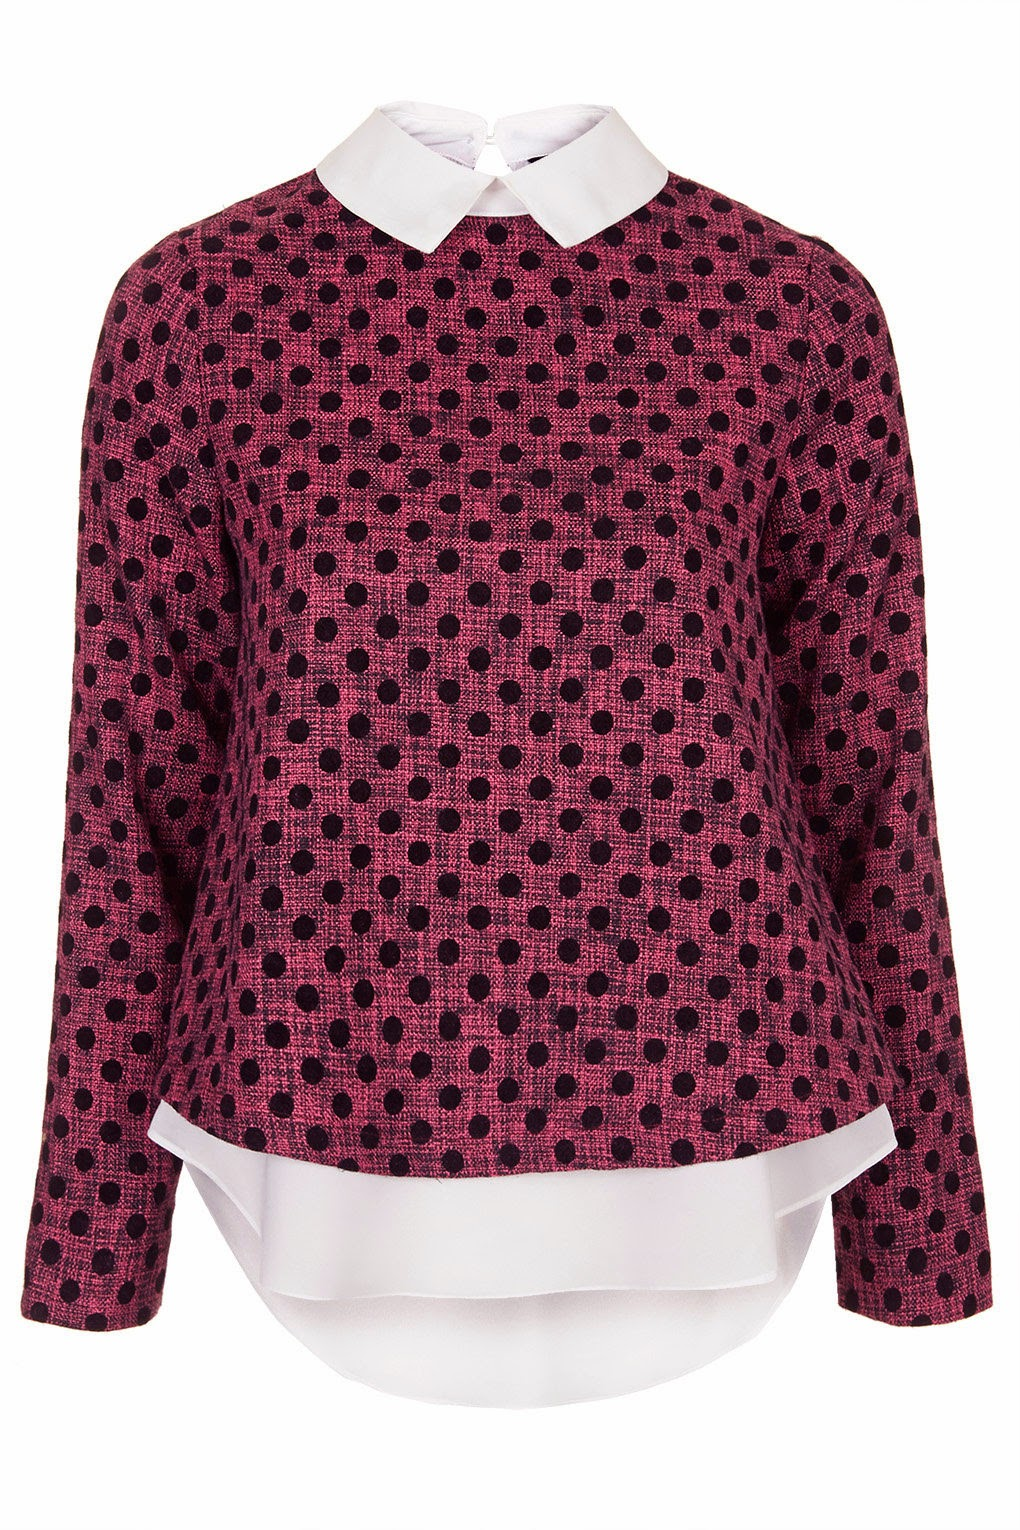 sister jane pink spotty top